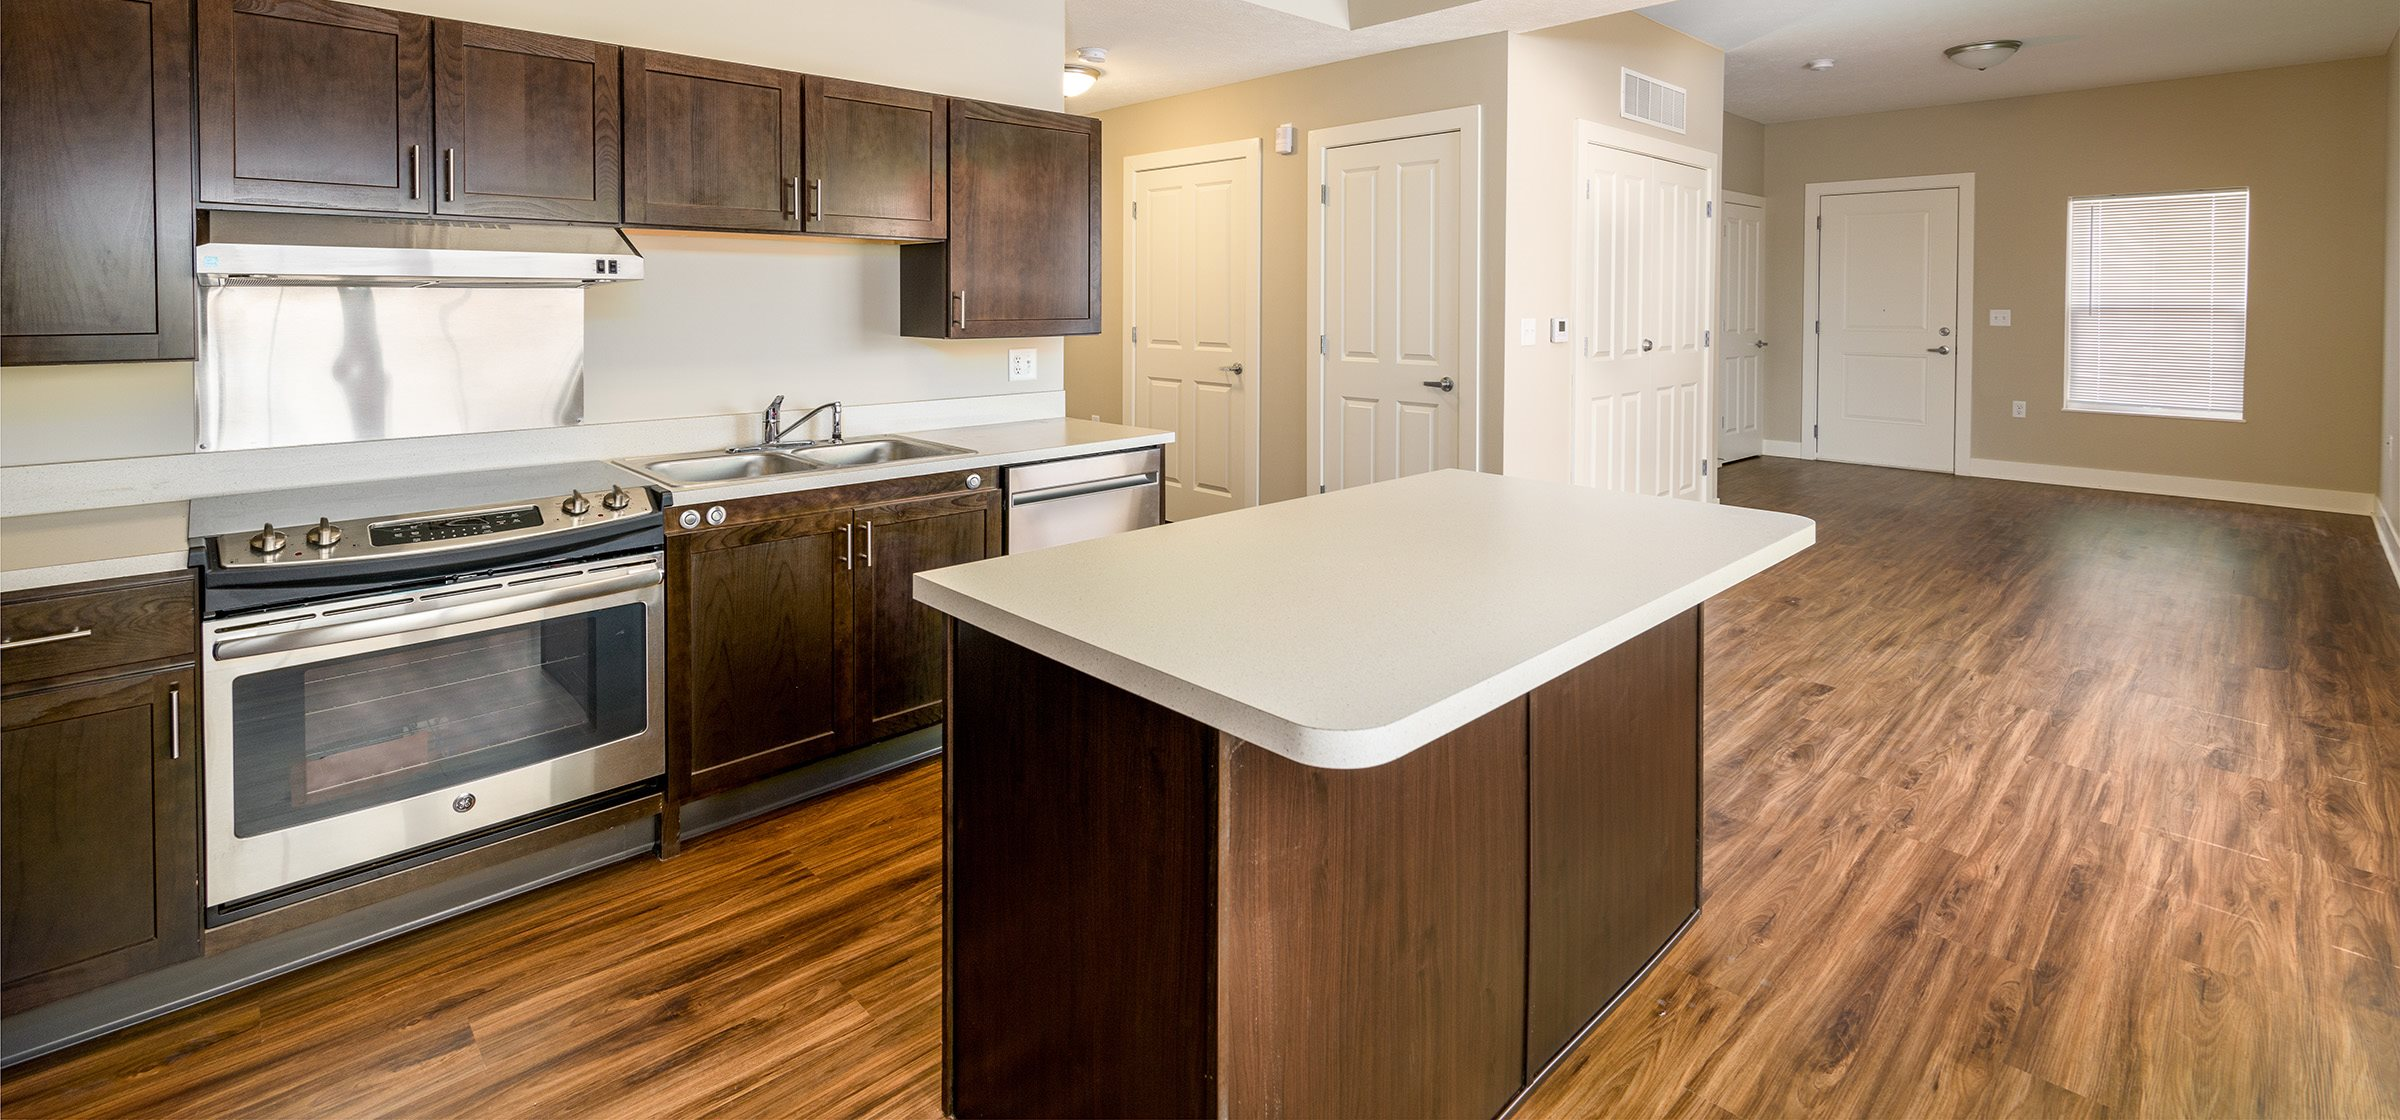 Daines Village Apartments | Apartments in London, OH